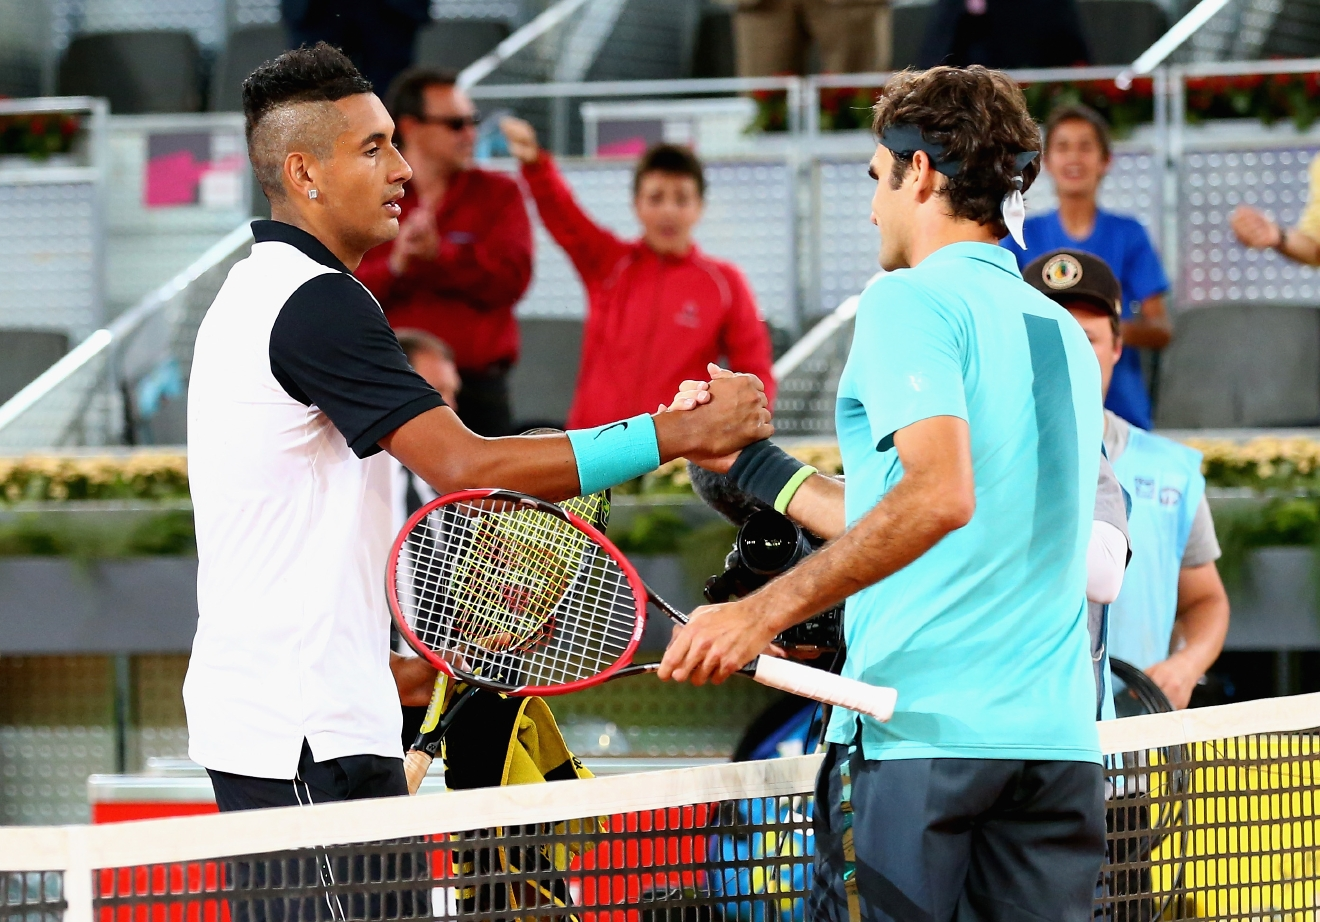 MADRID, SPAIN - MAY 06:  Nick Kyrgios of Australia shakes hands at the net after his three set victory against Roger Federer of Switzerland in their second round match during day five of the Mutua Madrid Open tennis tournament at the Caja Magica  on May 6, 2015 in Madrid, Spain.  (Photo by Clive Brunskill/Getty Images)